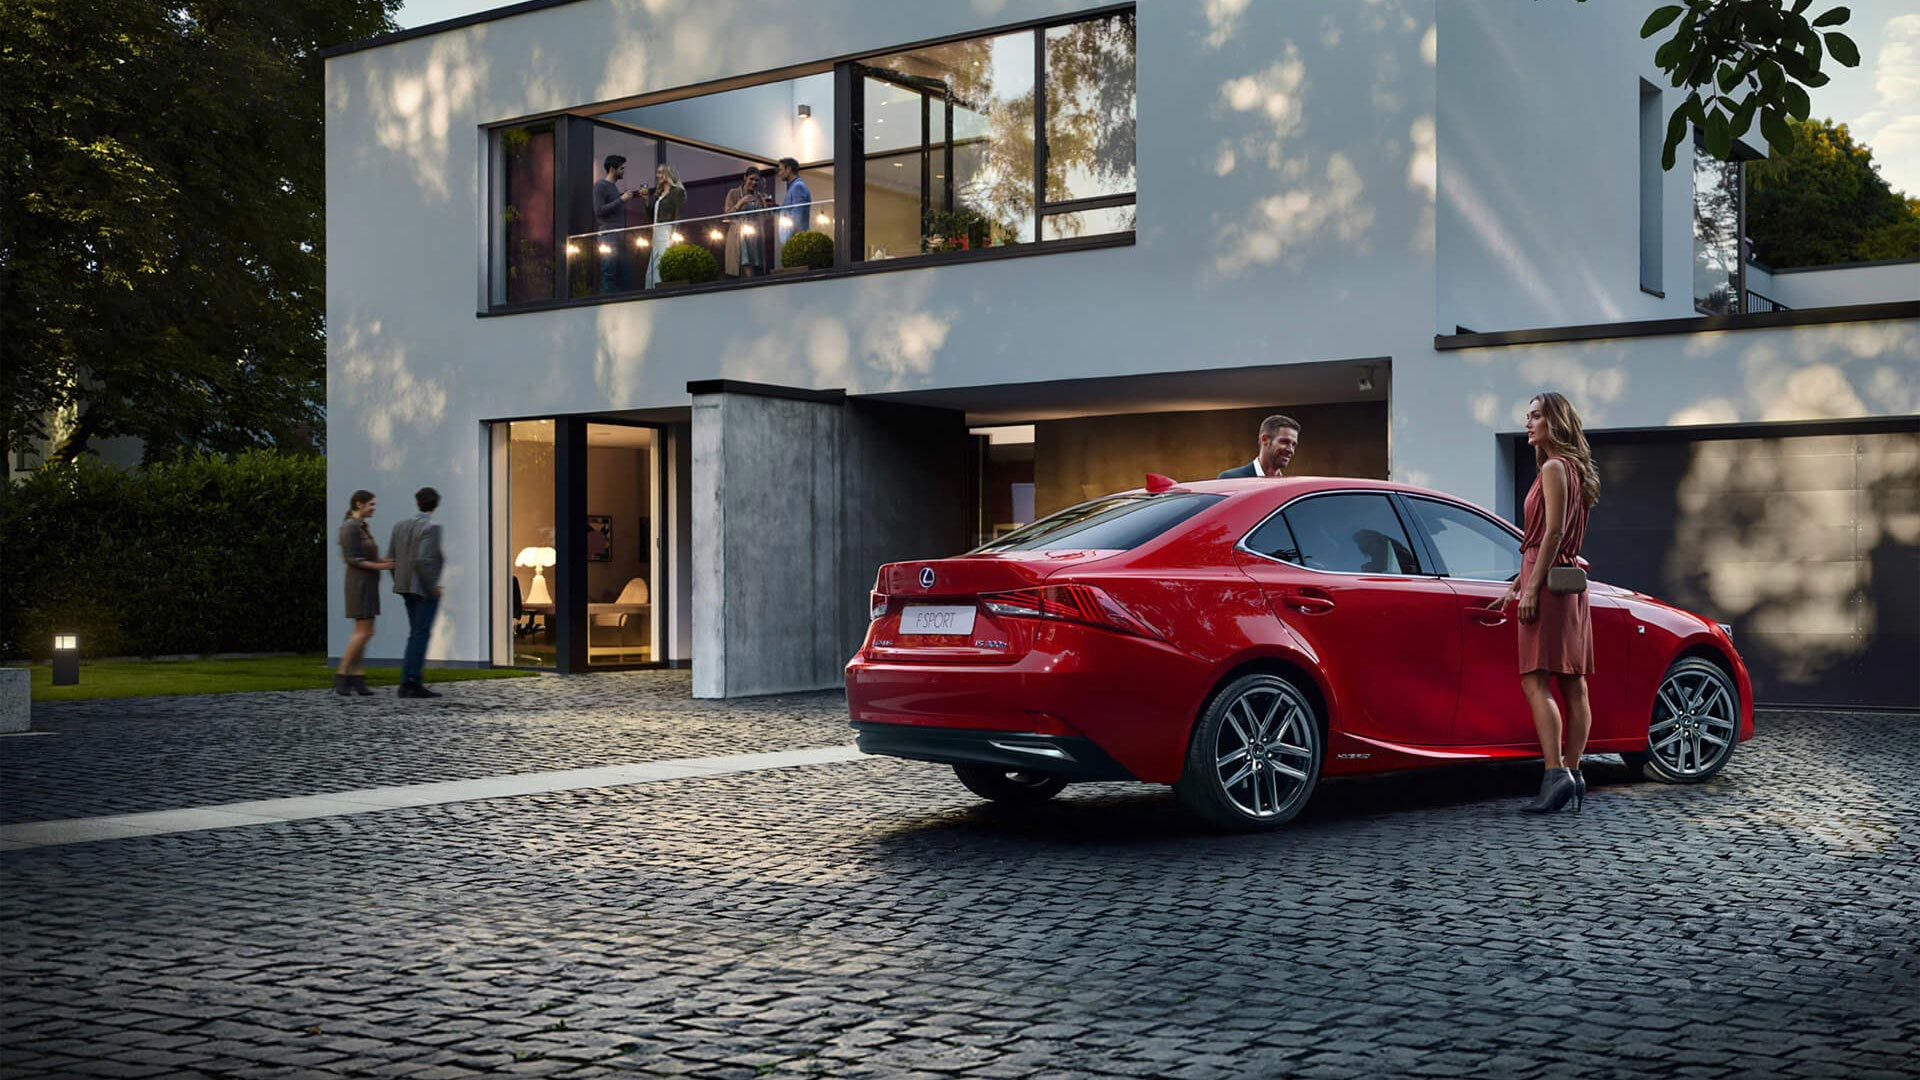 2018 lexus ownership ownershipHUB hero 1920x1920 v2